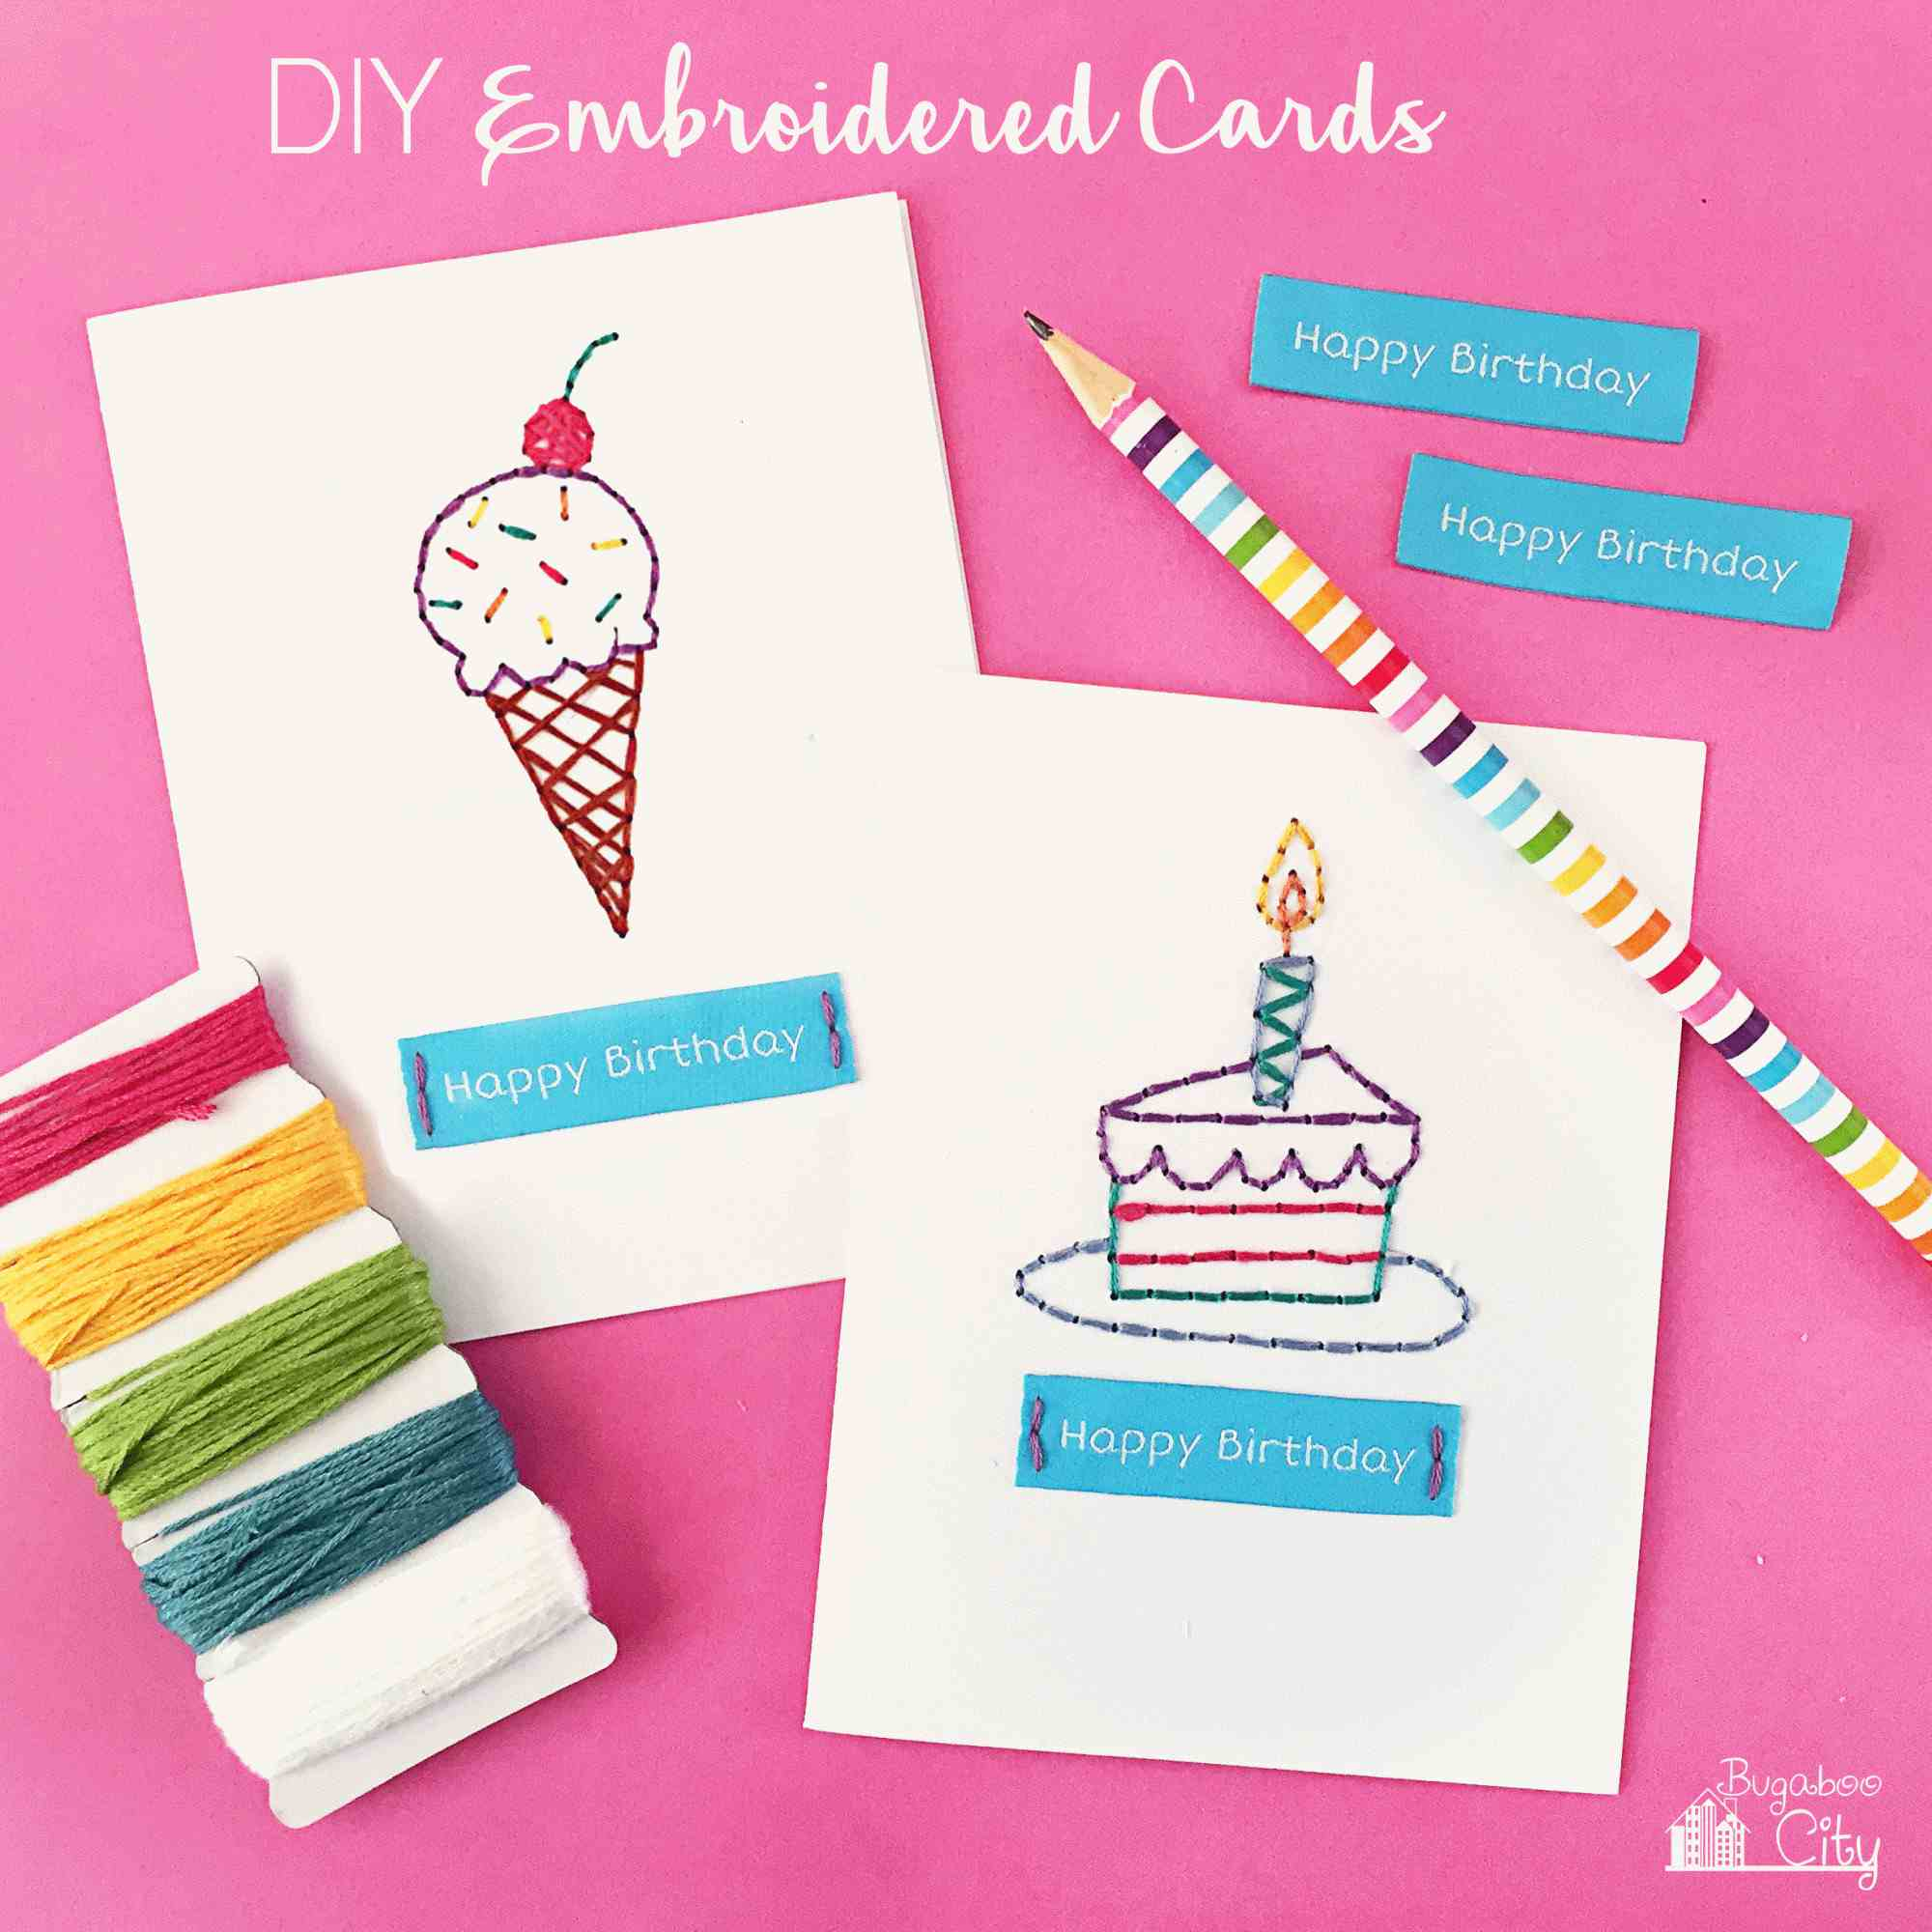 13 Year Old Birthday Card Ideas Get Inspiration From 25 Of The Best Diy Birthday Cards